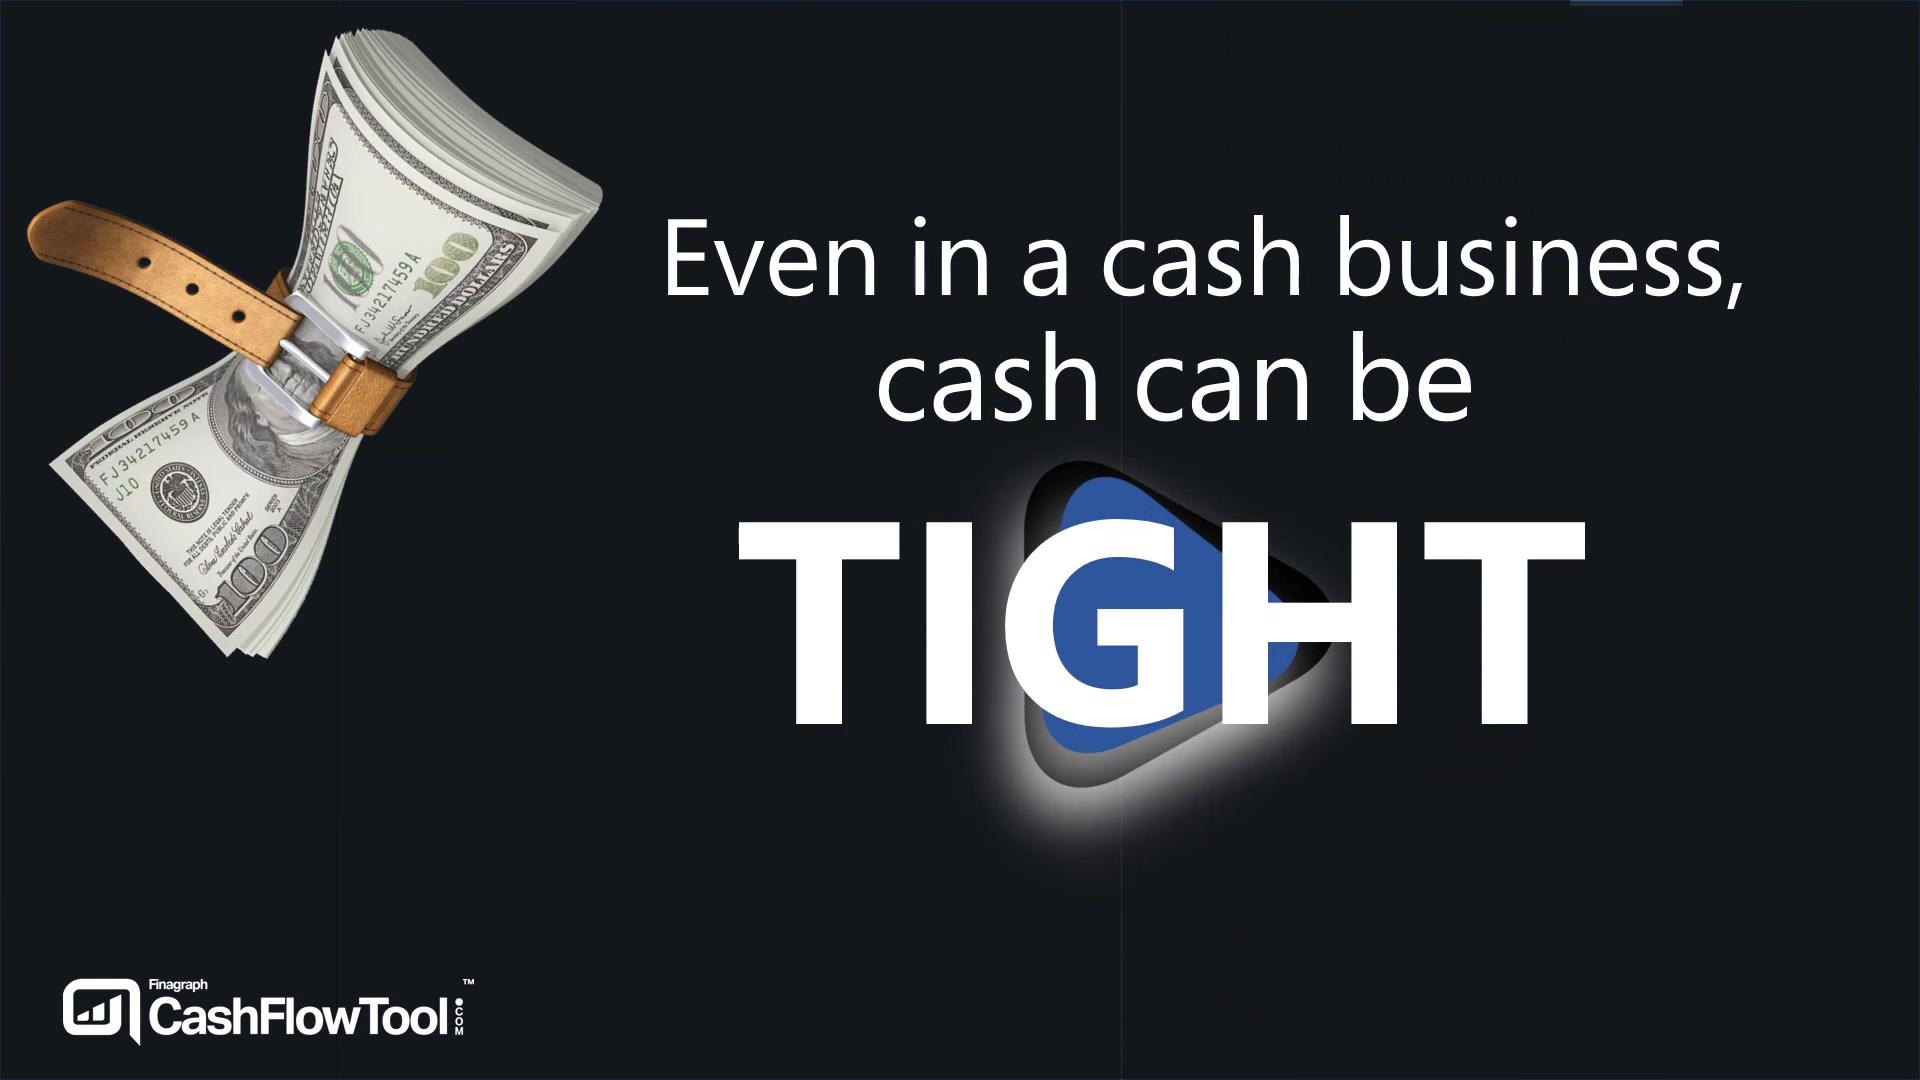 Even in a cash business, cash can be tight